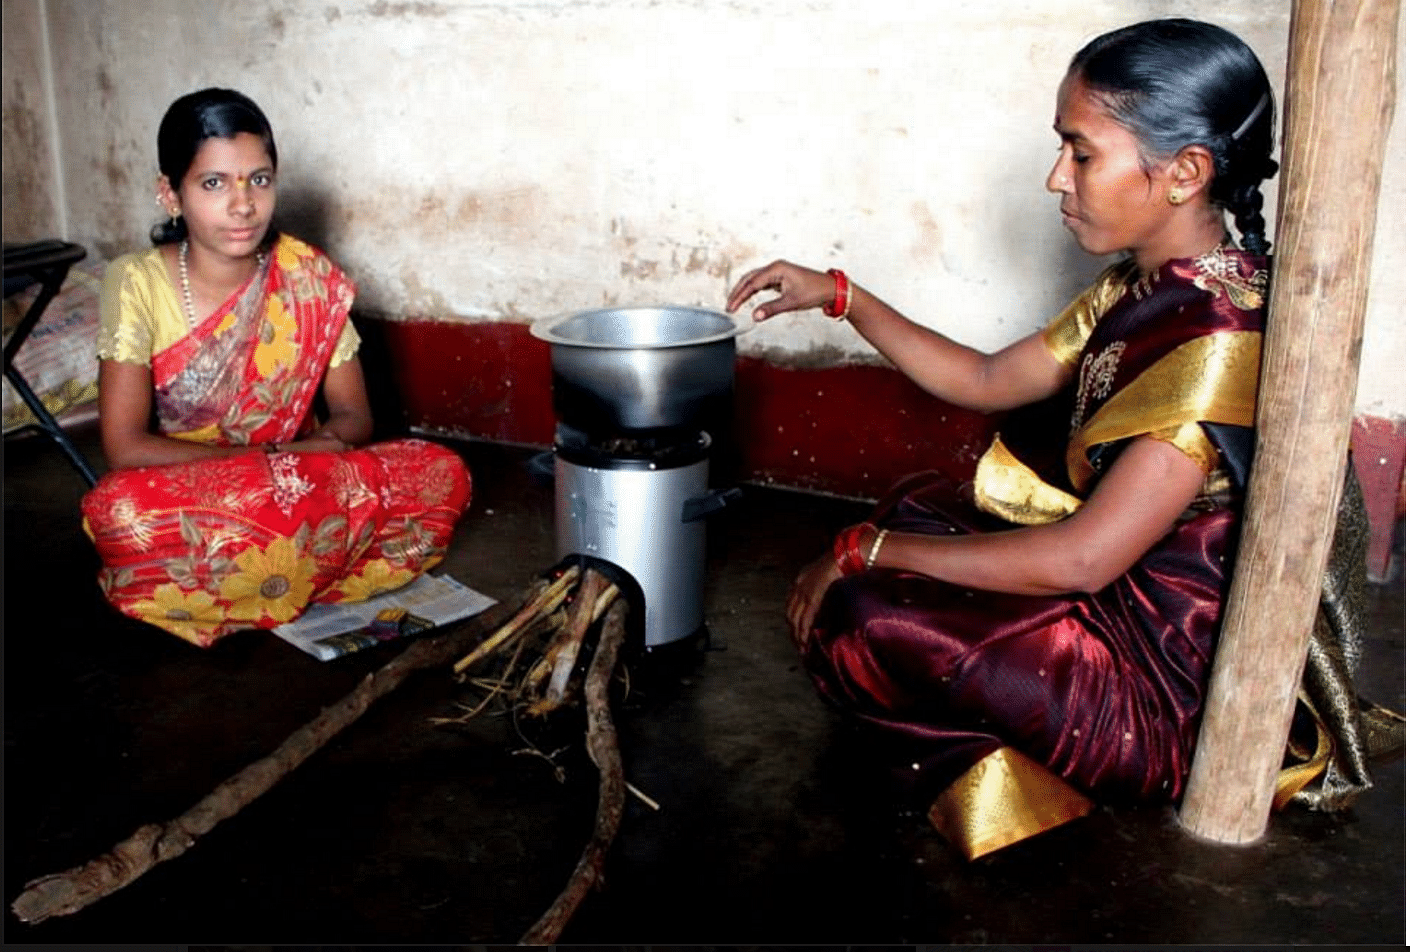 cookstove in rural India